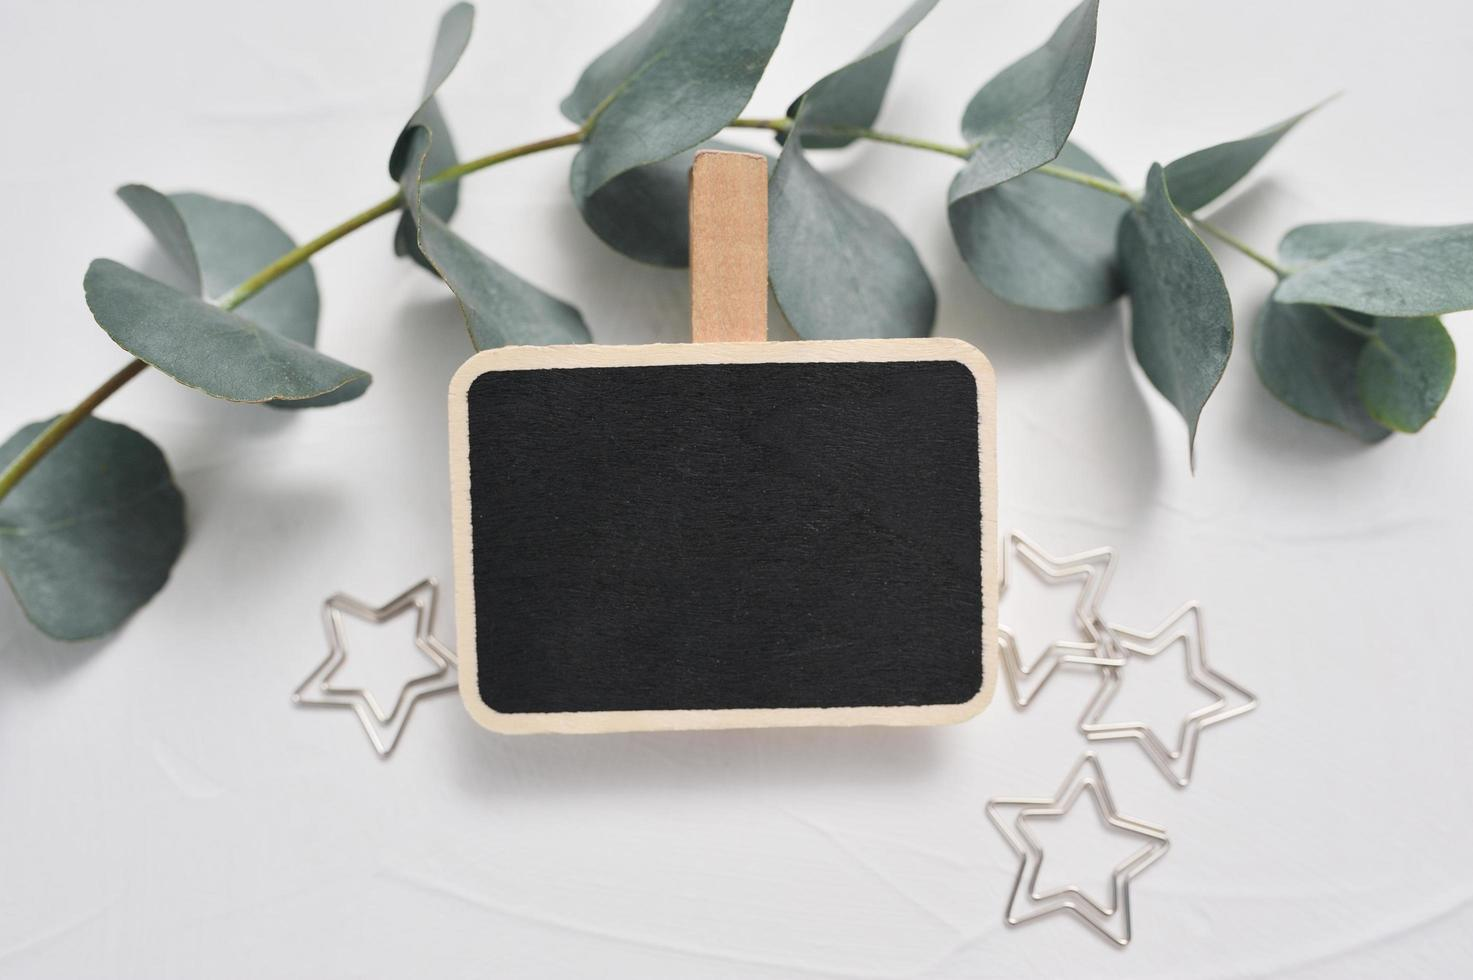 Mock up of eucalyptus branch, decor of stars and wooden board photo